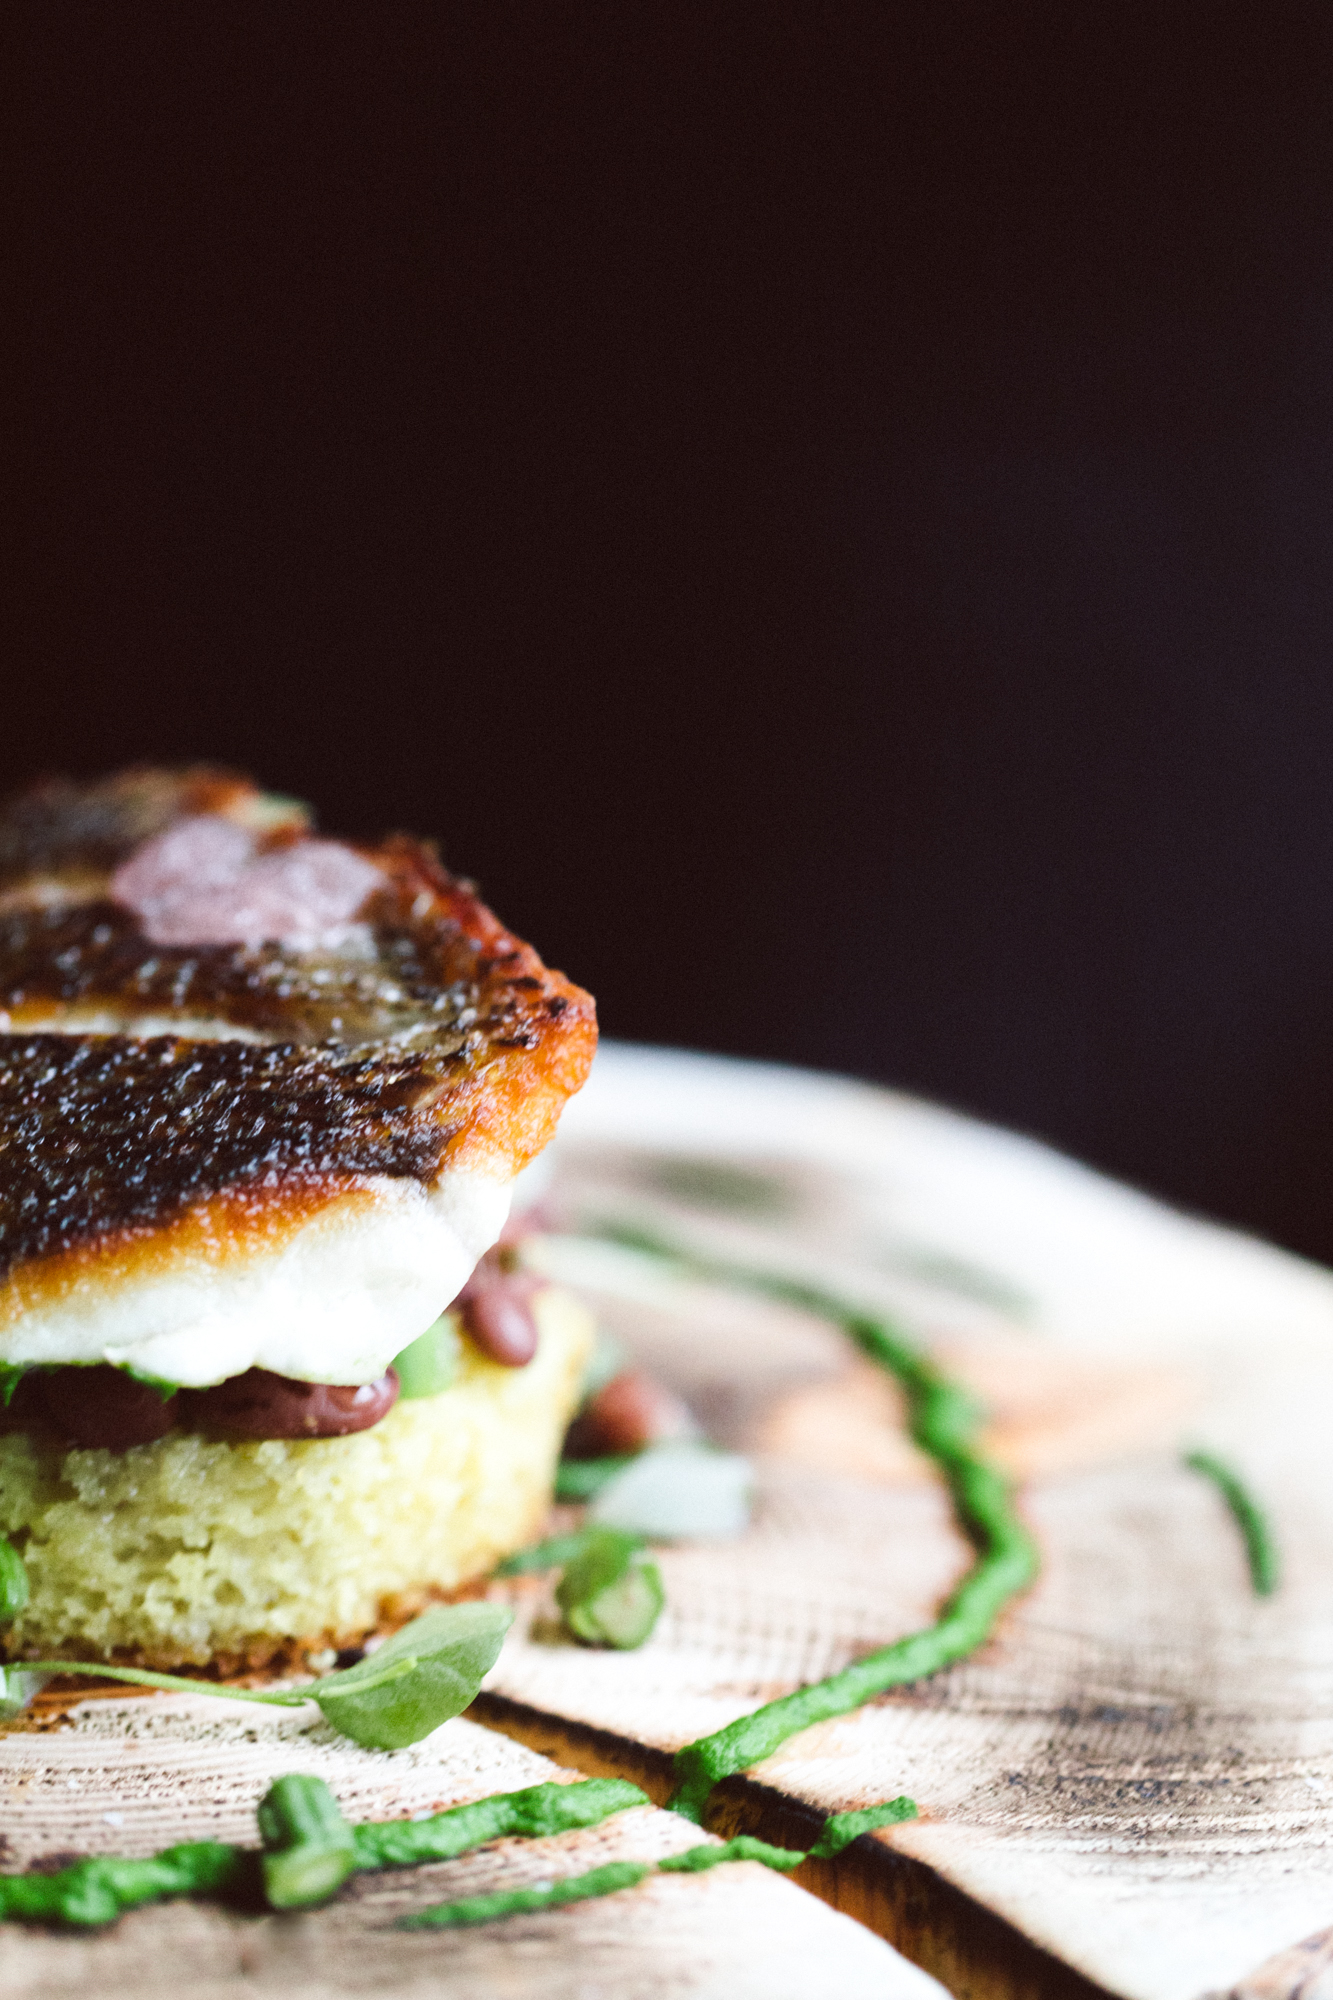 Jimena Peck Denver Lifestyle Food Photographer Thistle and Mint Fish Dish